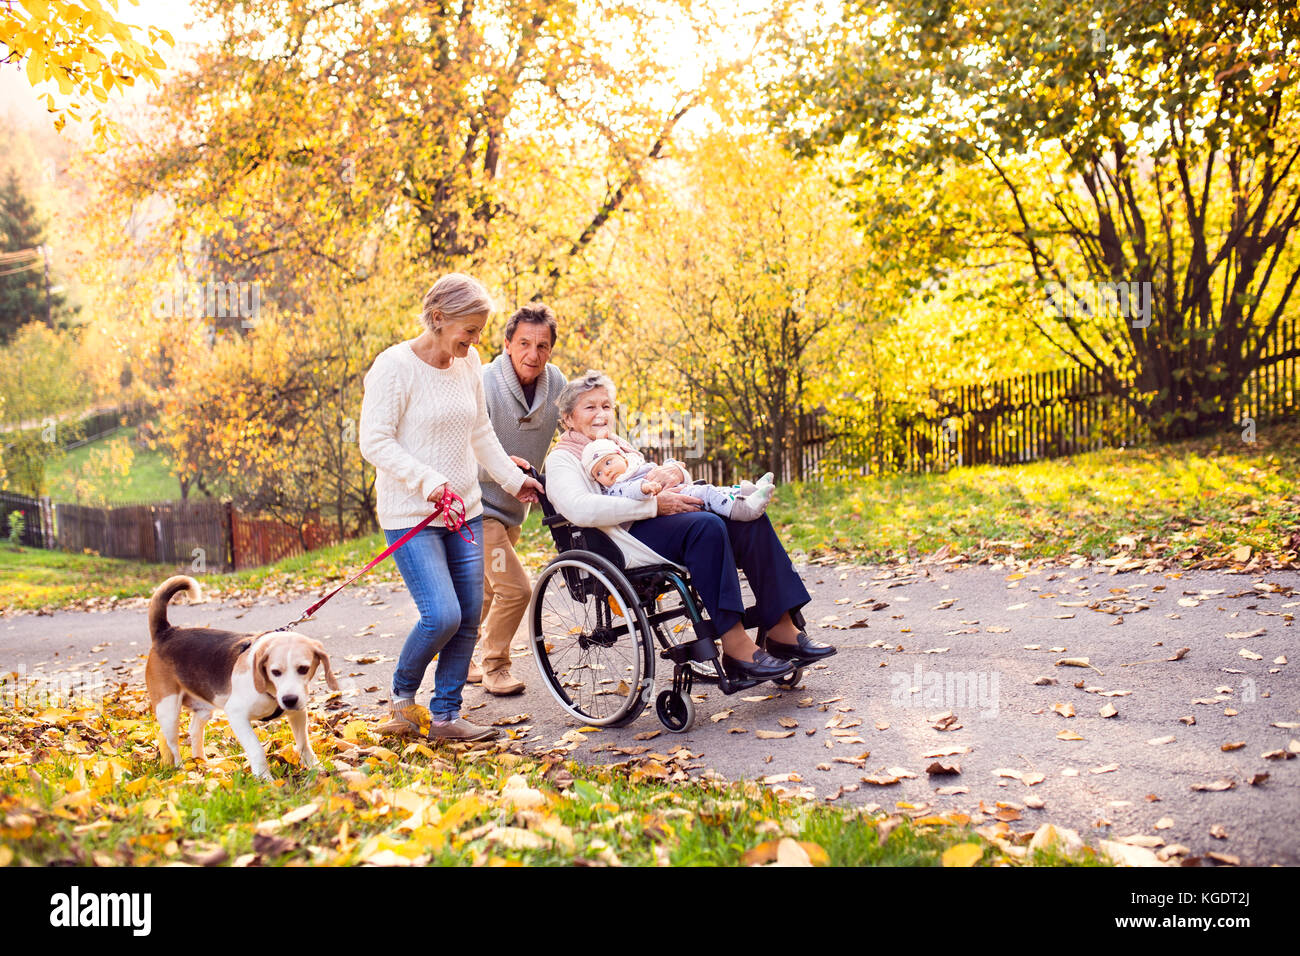 Extended family with dog on a walk in autumn nature. - Stock Image